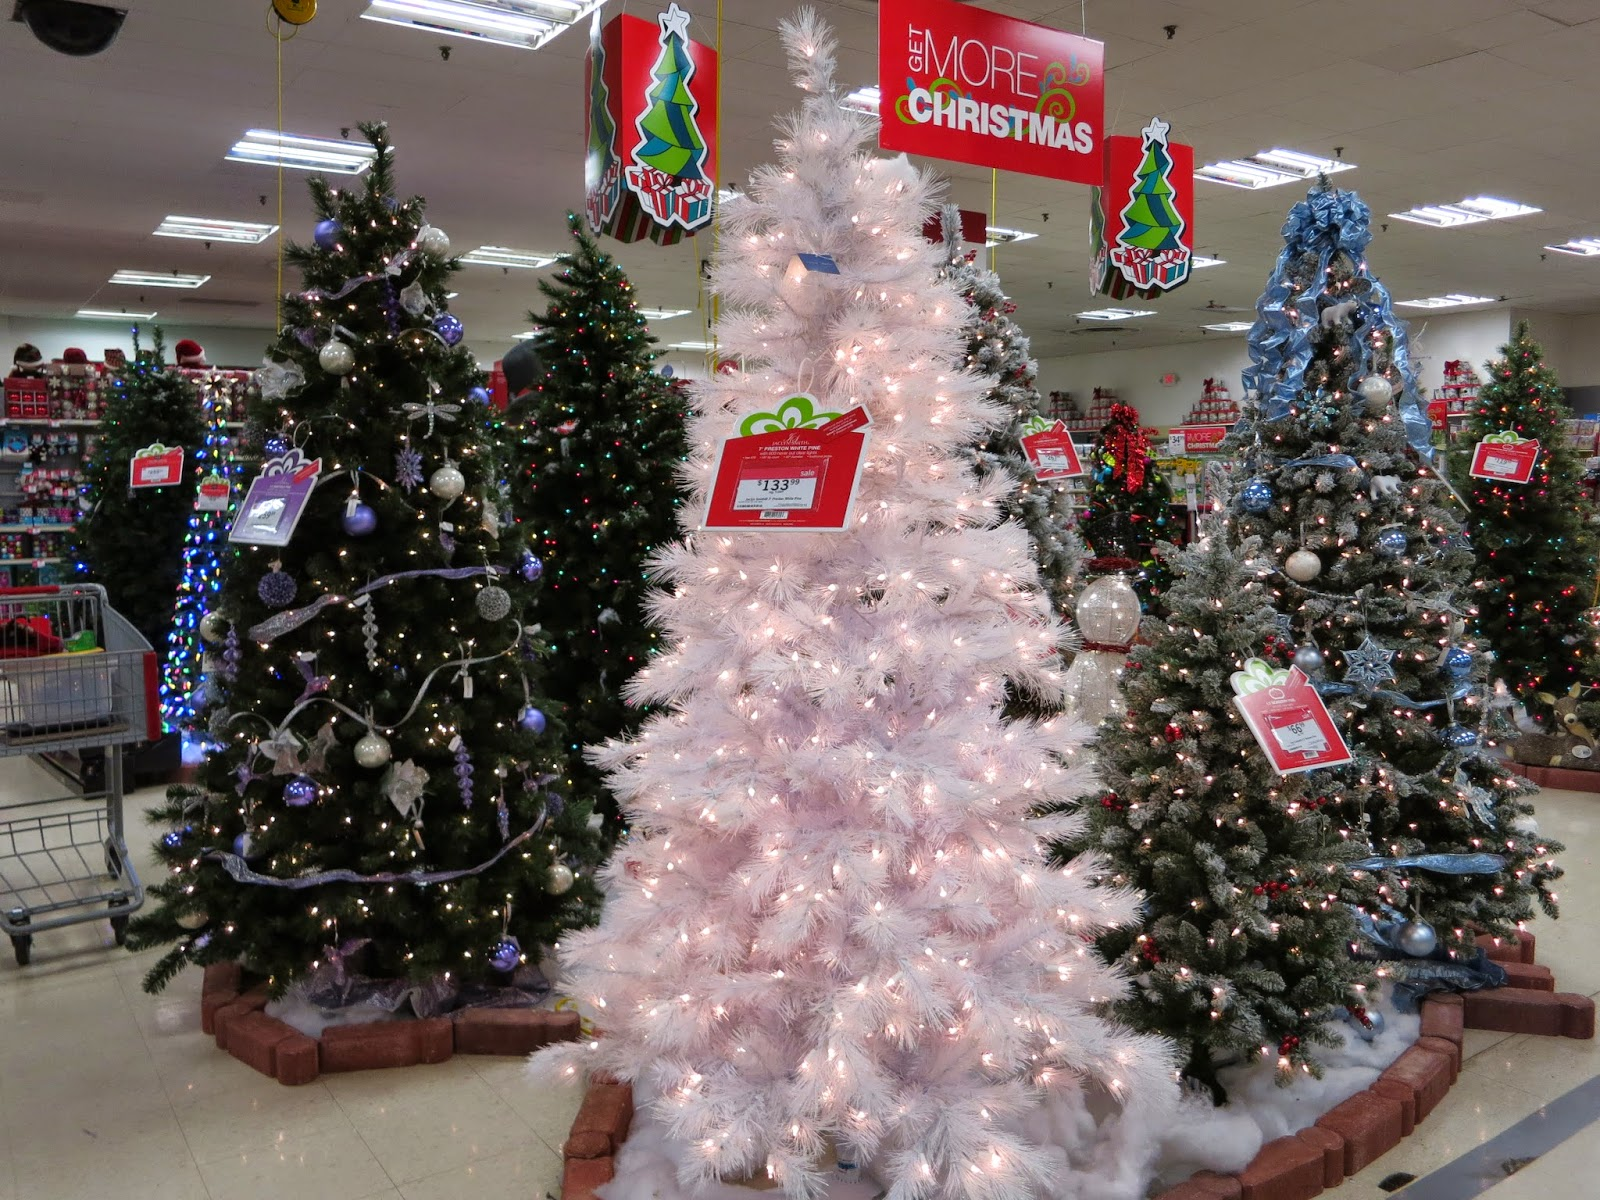 Disney christmas decorations for home - Decorating Your Home For The Holidays With Kmart Get The Best Decorations For Less Bestdressedhome Ad